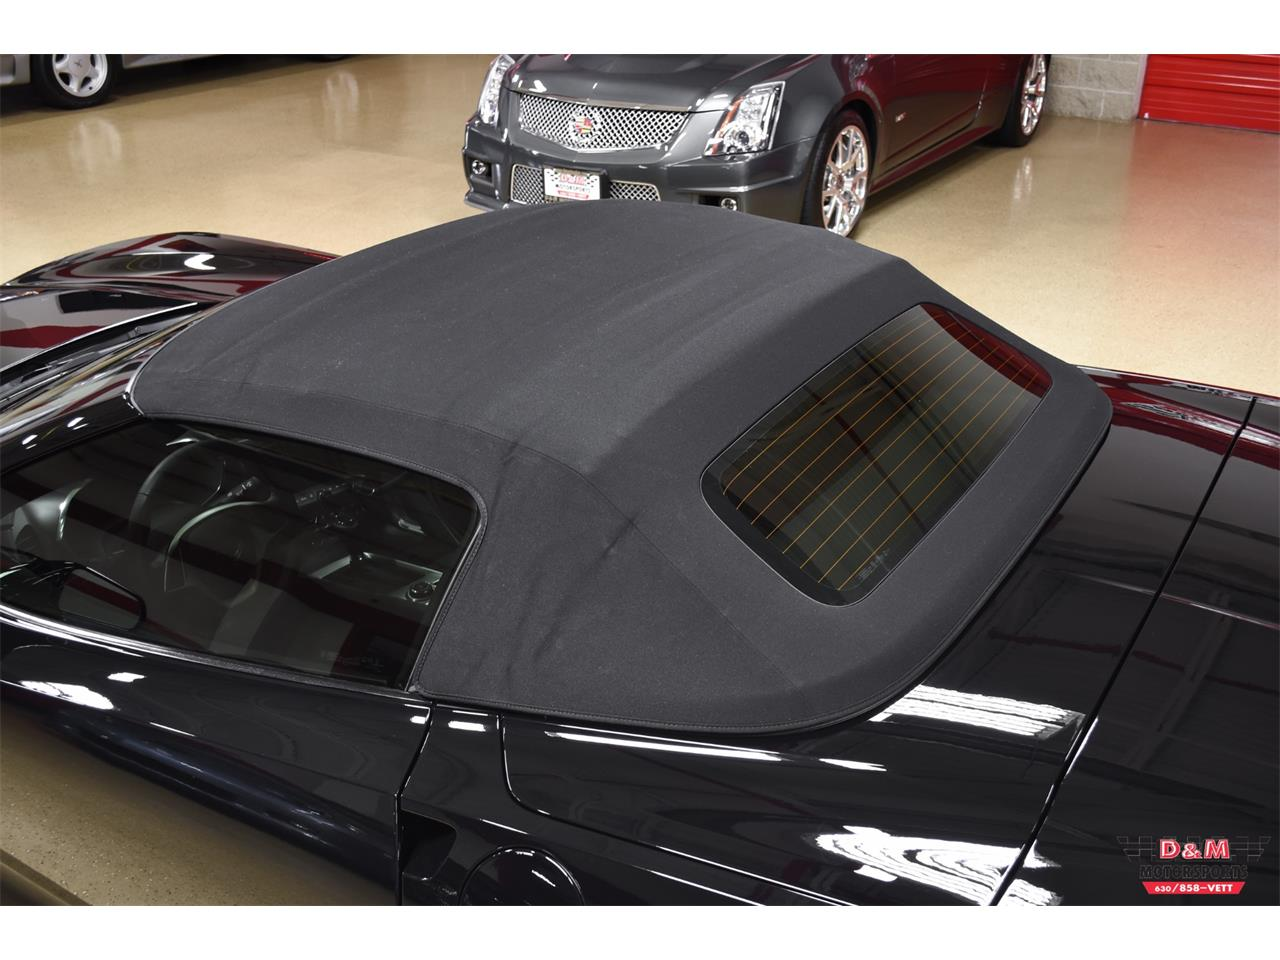 Large Picture of '15 Chevrolet Corvette - $50,995.00 Offered by D & M Motorsports - PZ21